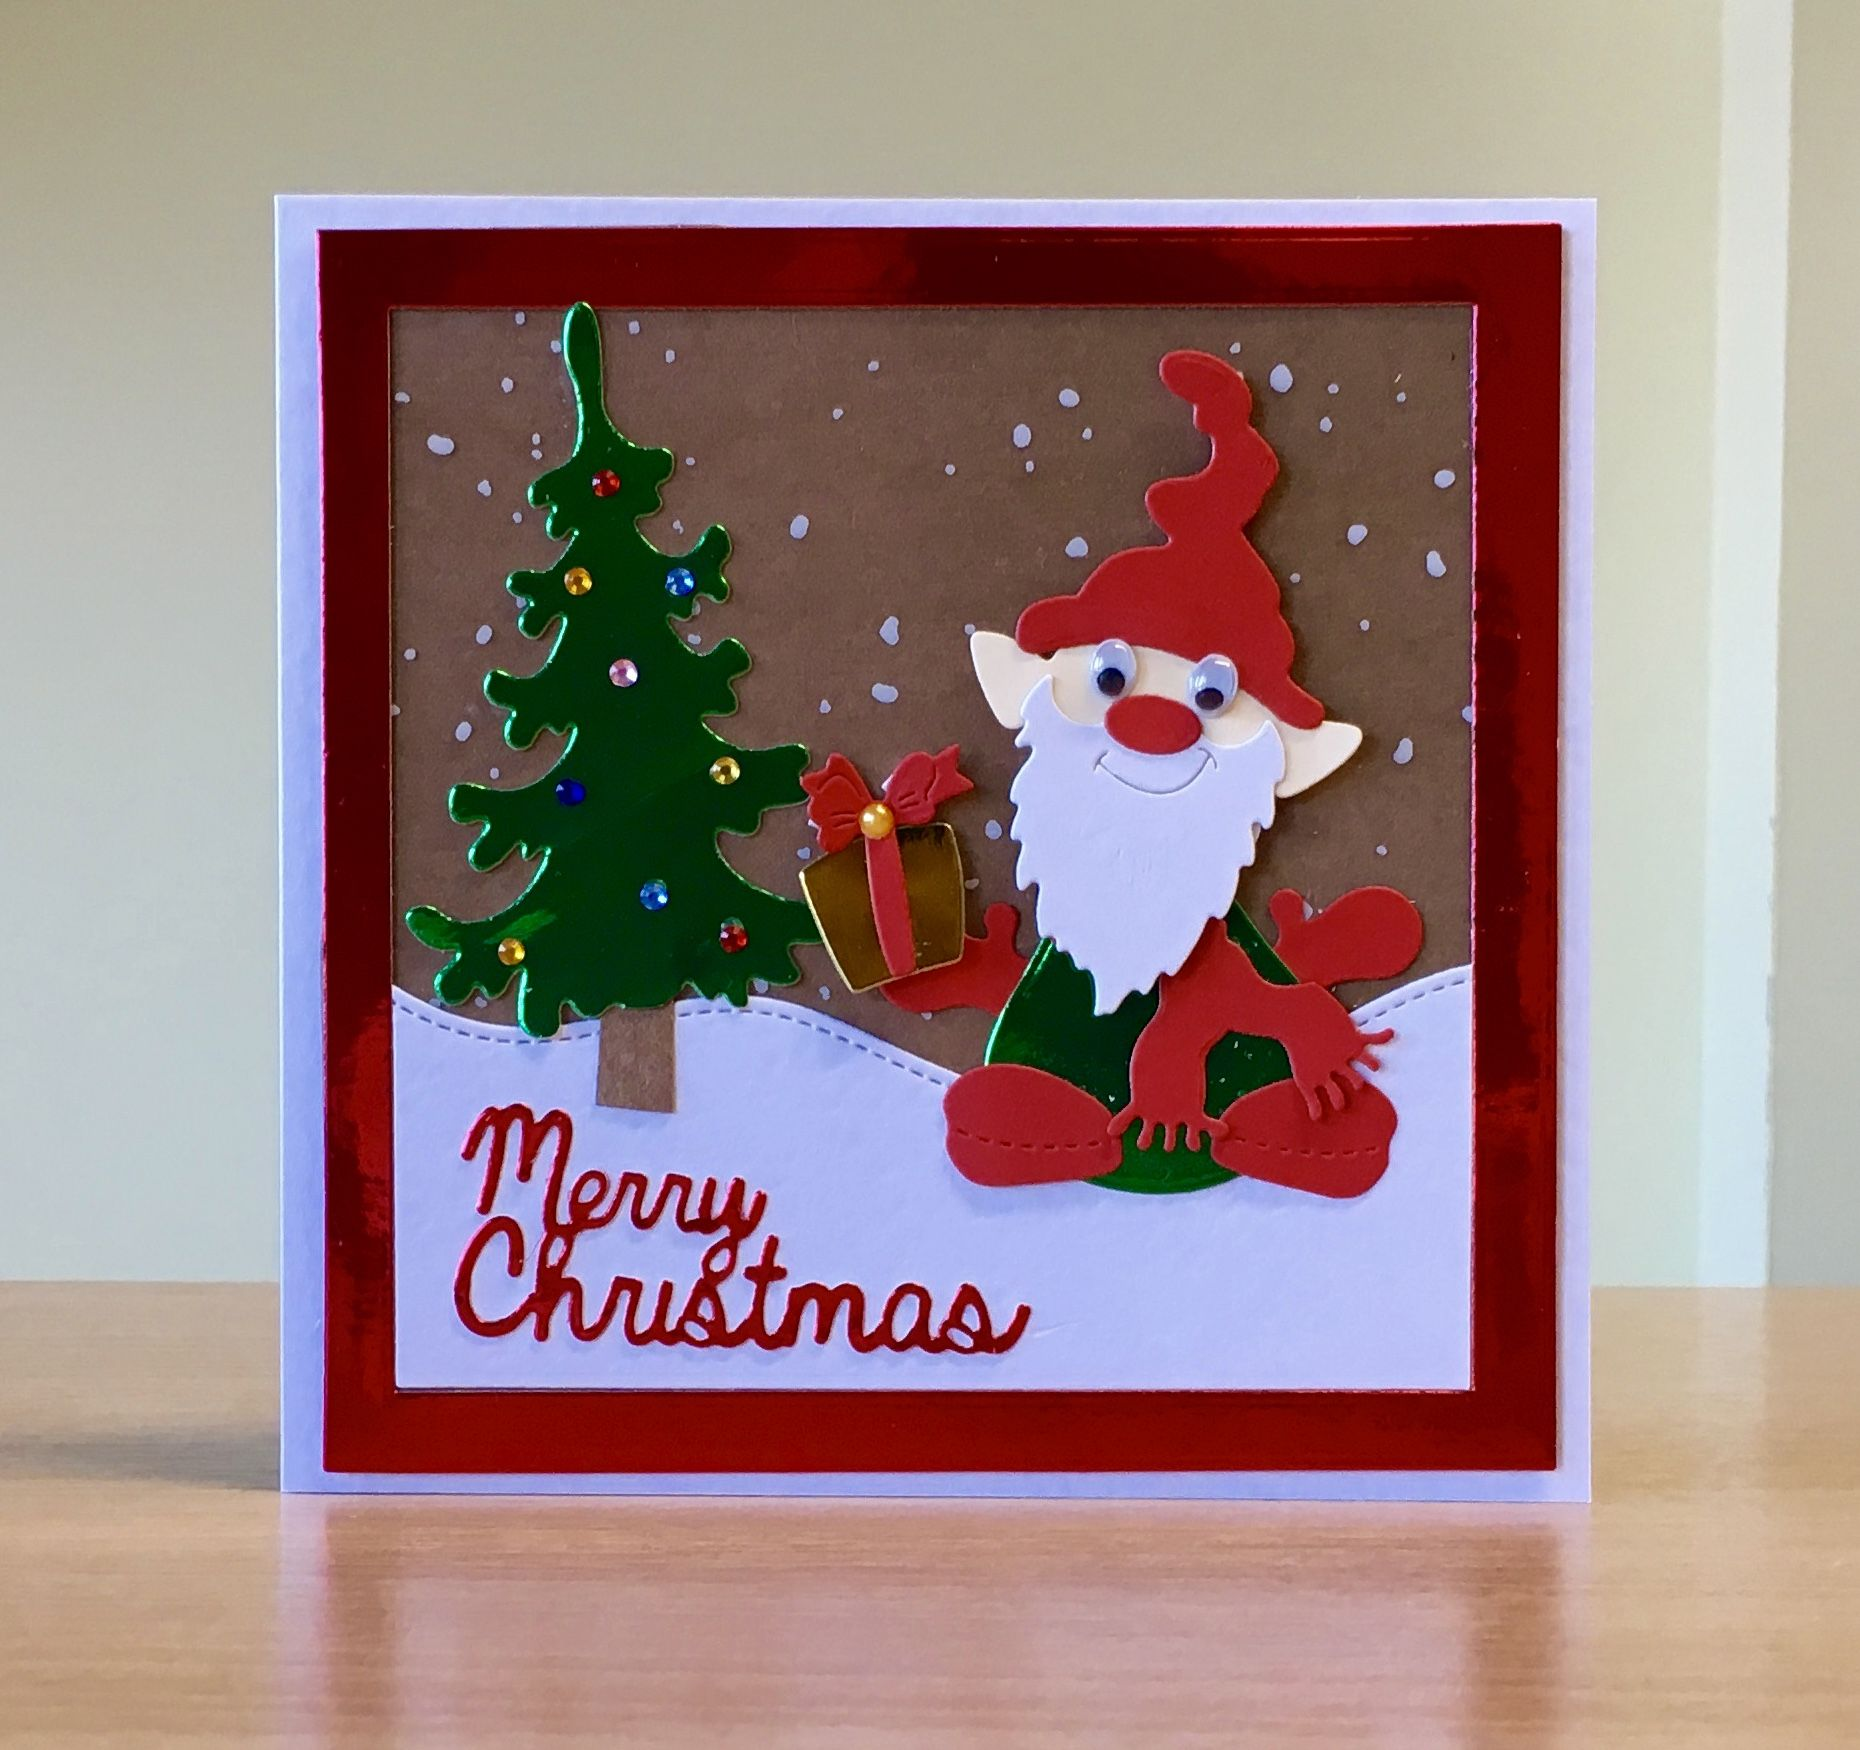 Christmas Card Handmade Unbranded Gnome Elf Die For More Of My Cards Please Visit Craftycardstudio O Handmade Craft Cards Cards Handmade Christmas Cards